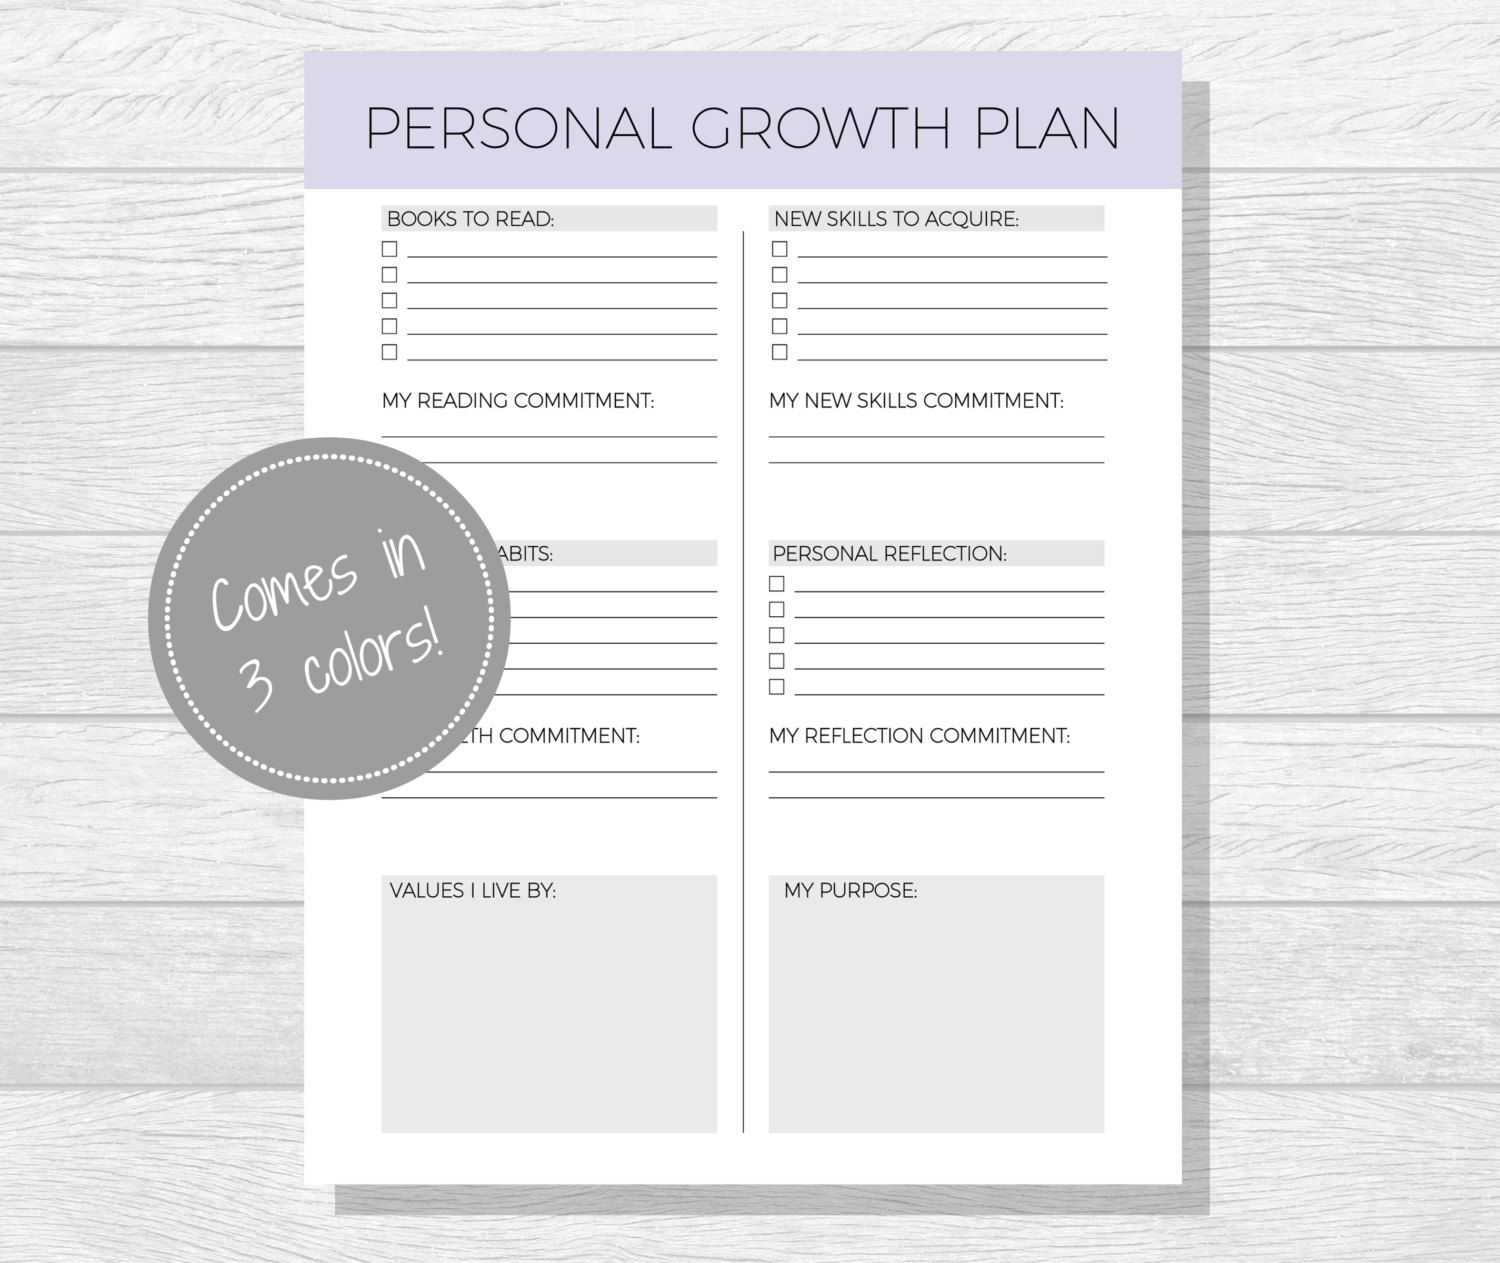 Personal Growth Plan Printable